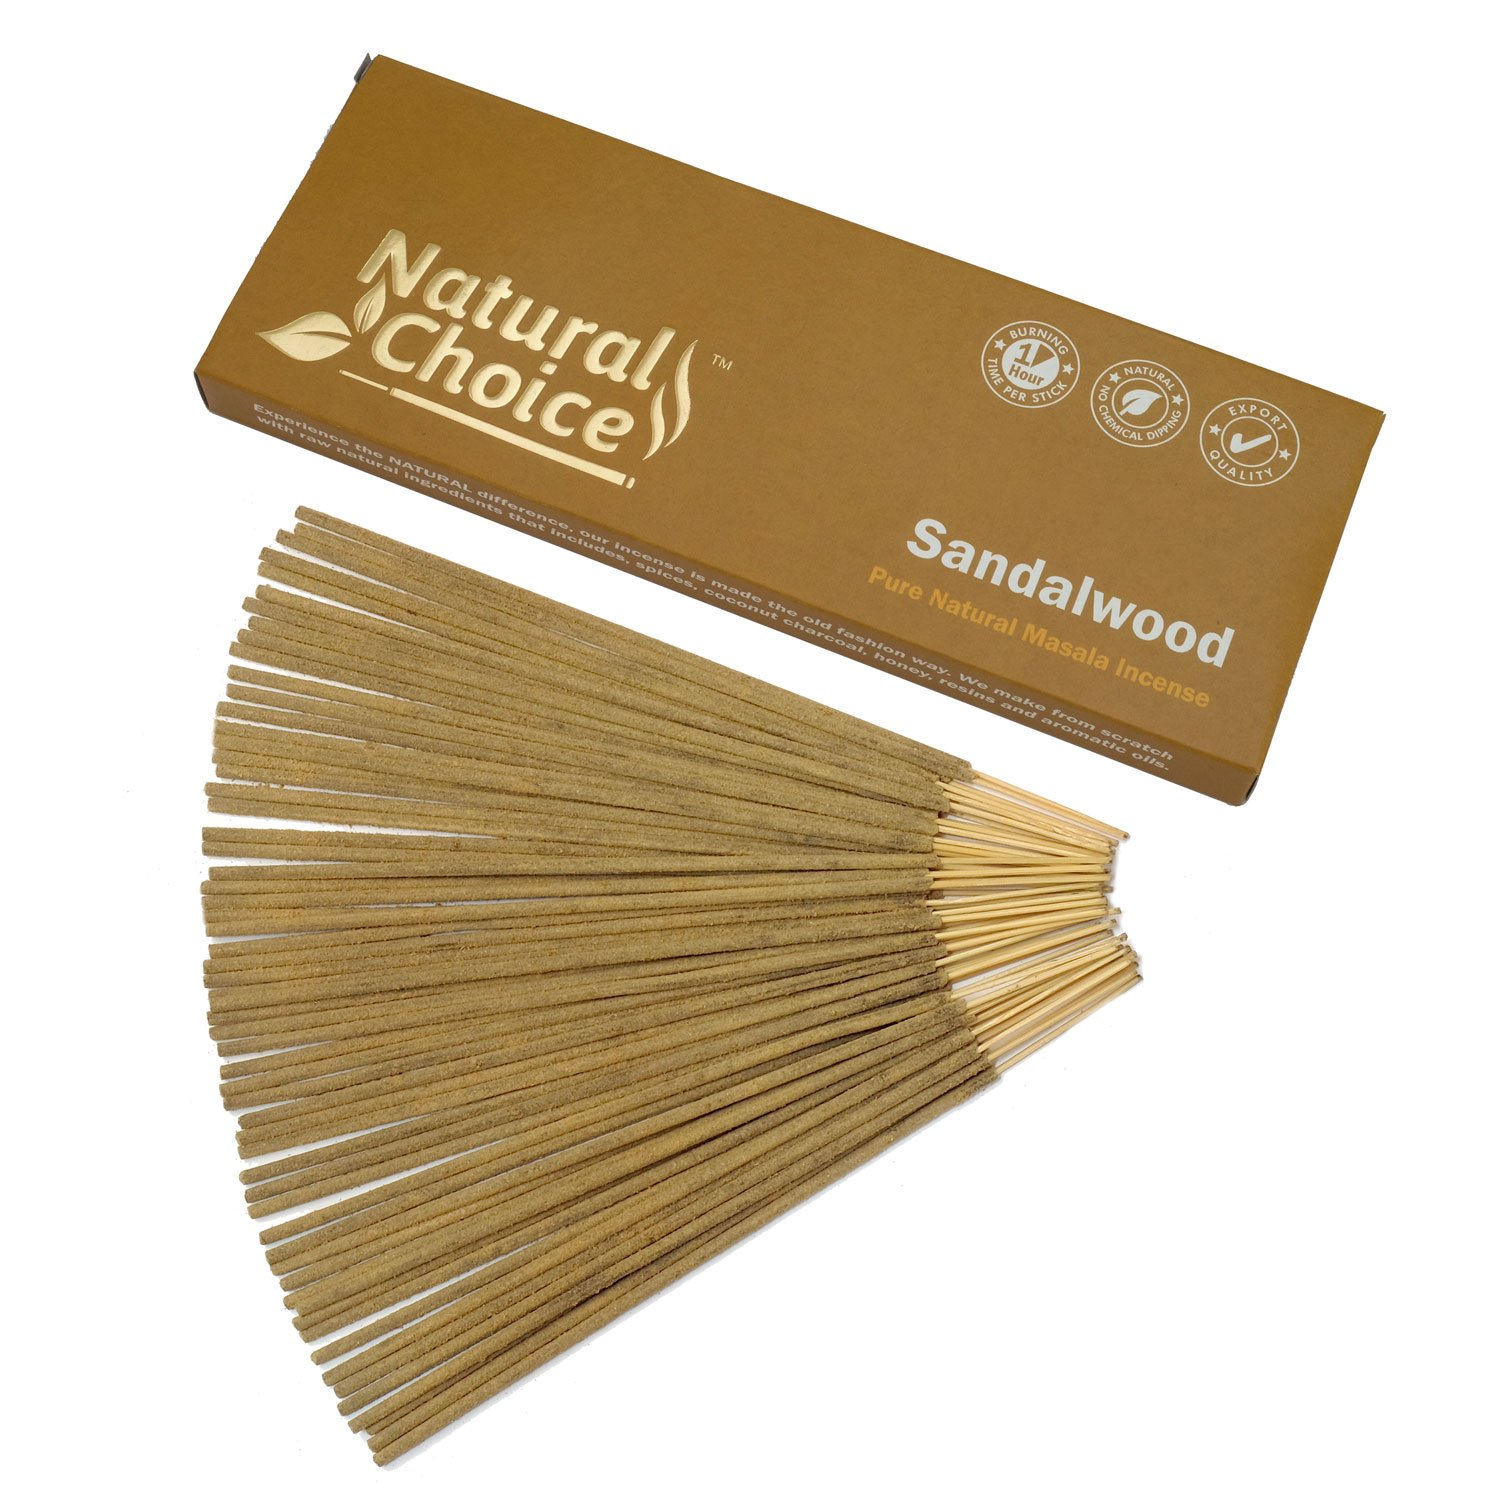 Natural Choice Incense Sandalwood Incense Sticks 100 Grams, Low Smoke Traditional Incense Sticks Made from Scratch, Never Dipped by Natural Choice Incense (Image #1)